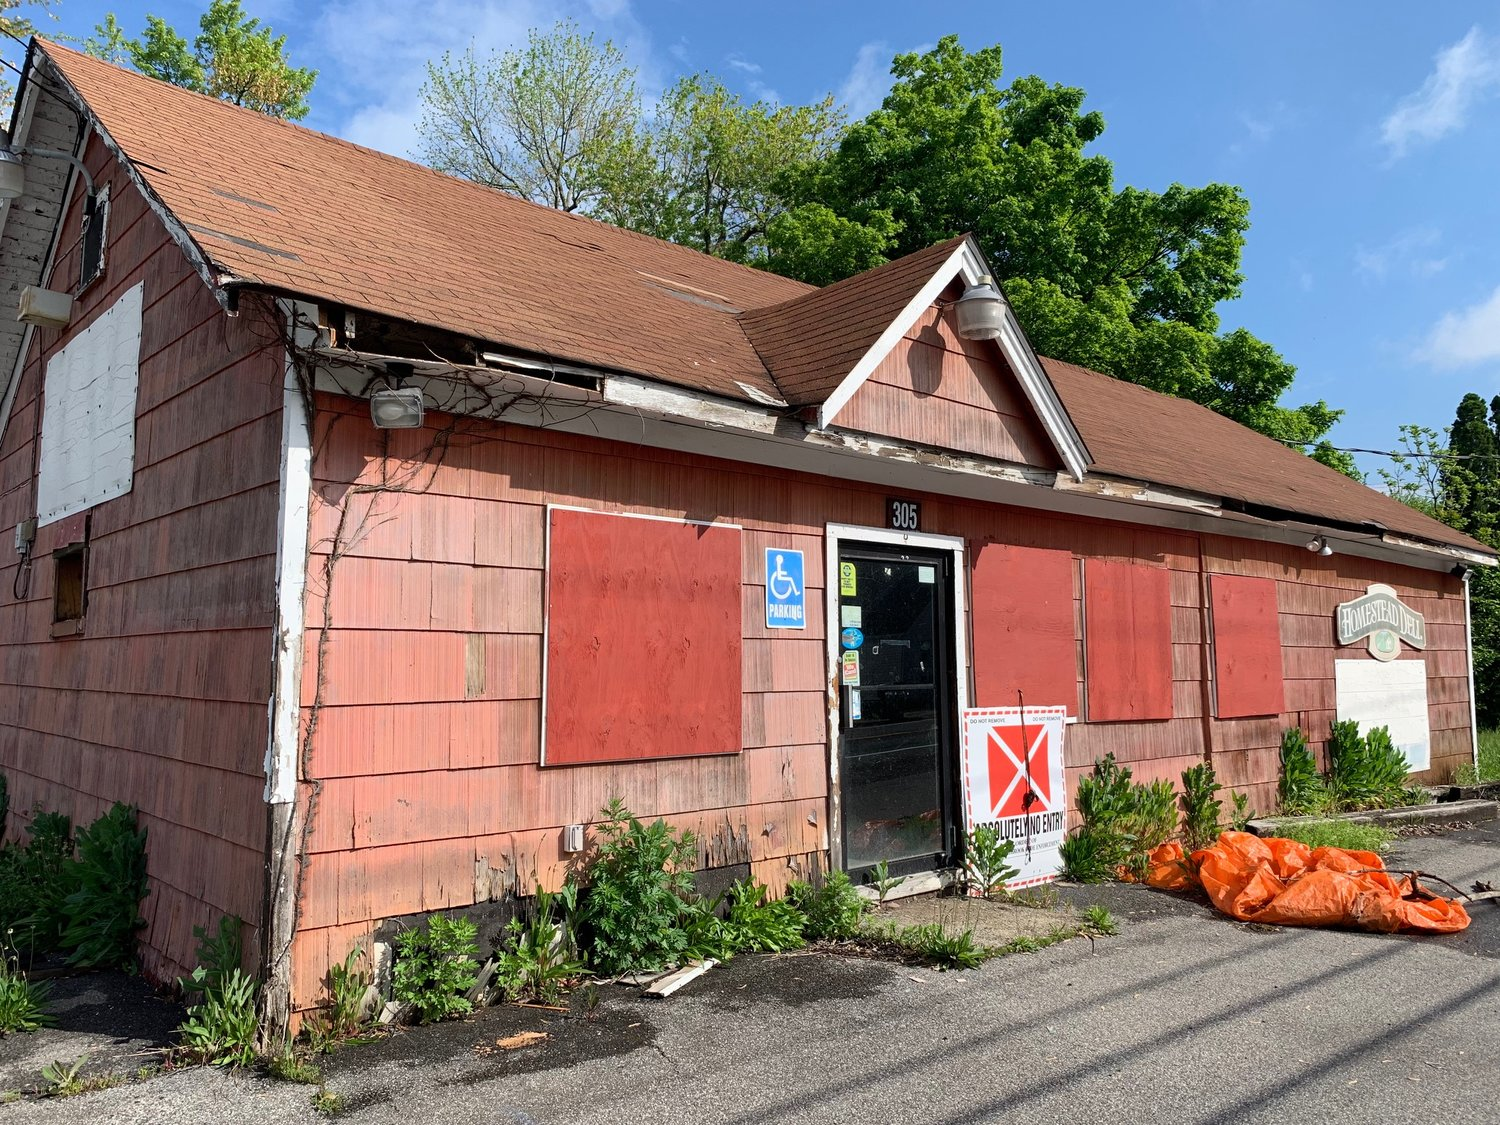 Located at 305 Homestead Avenue in Maybrook, the vacant Homestead Deli is an eyesore and health risk, according to village resident Linda Amodio.